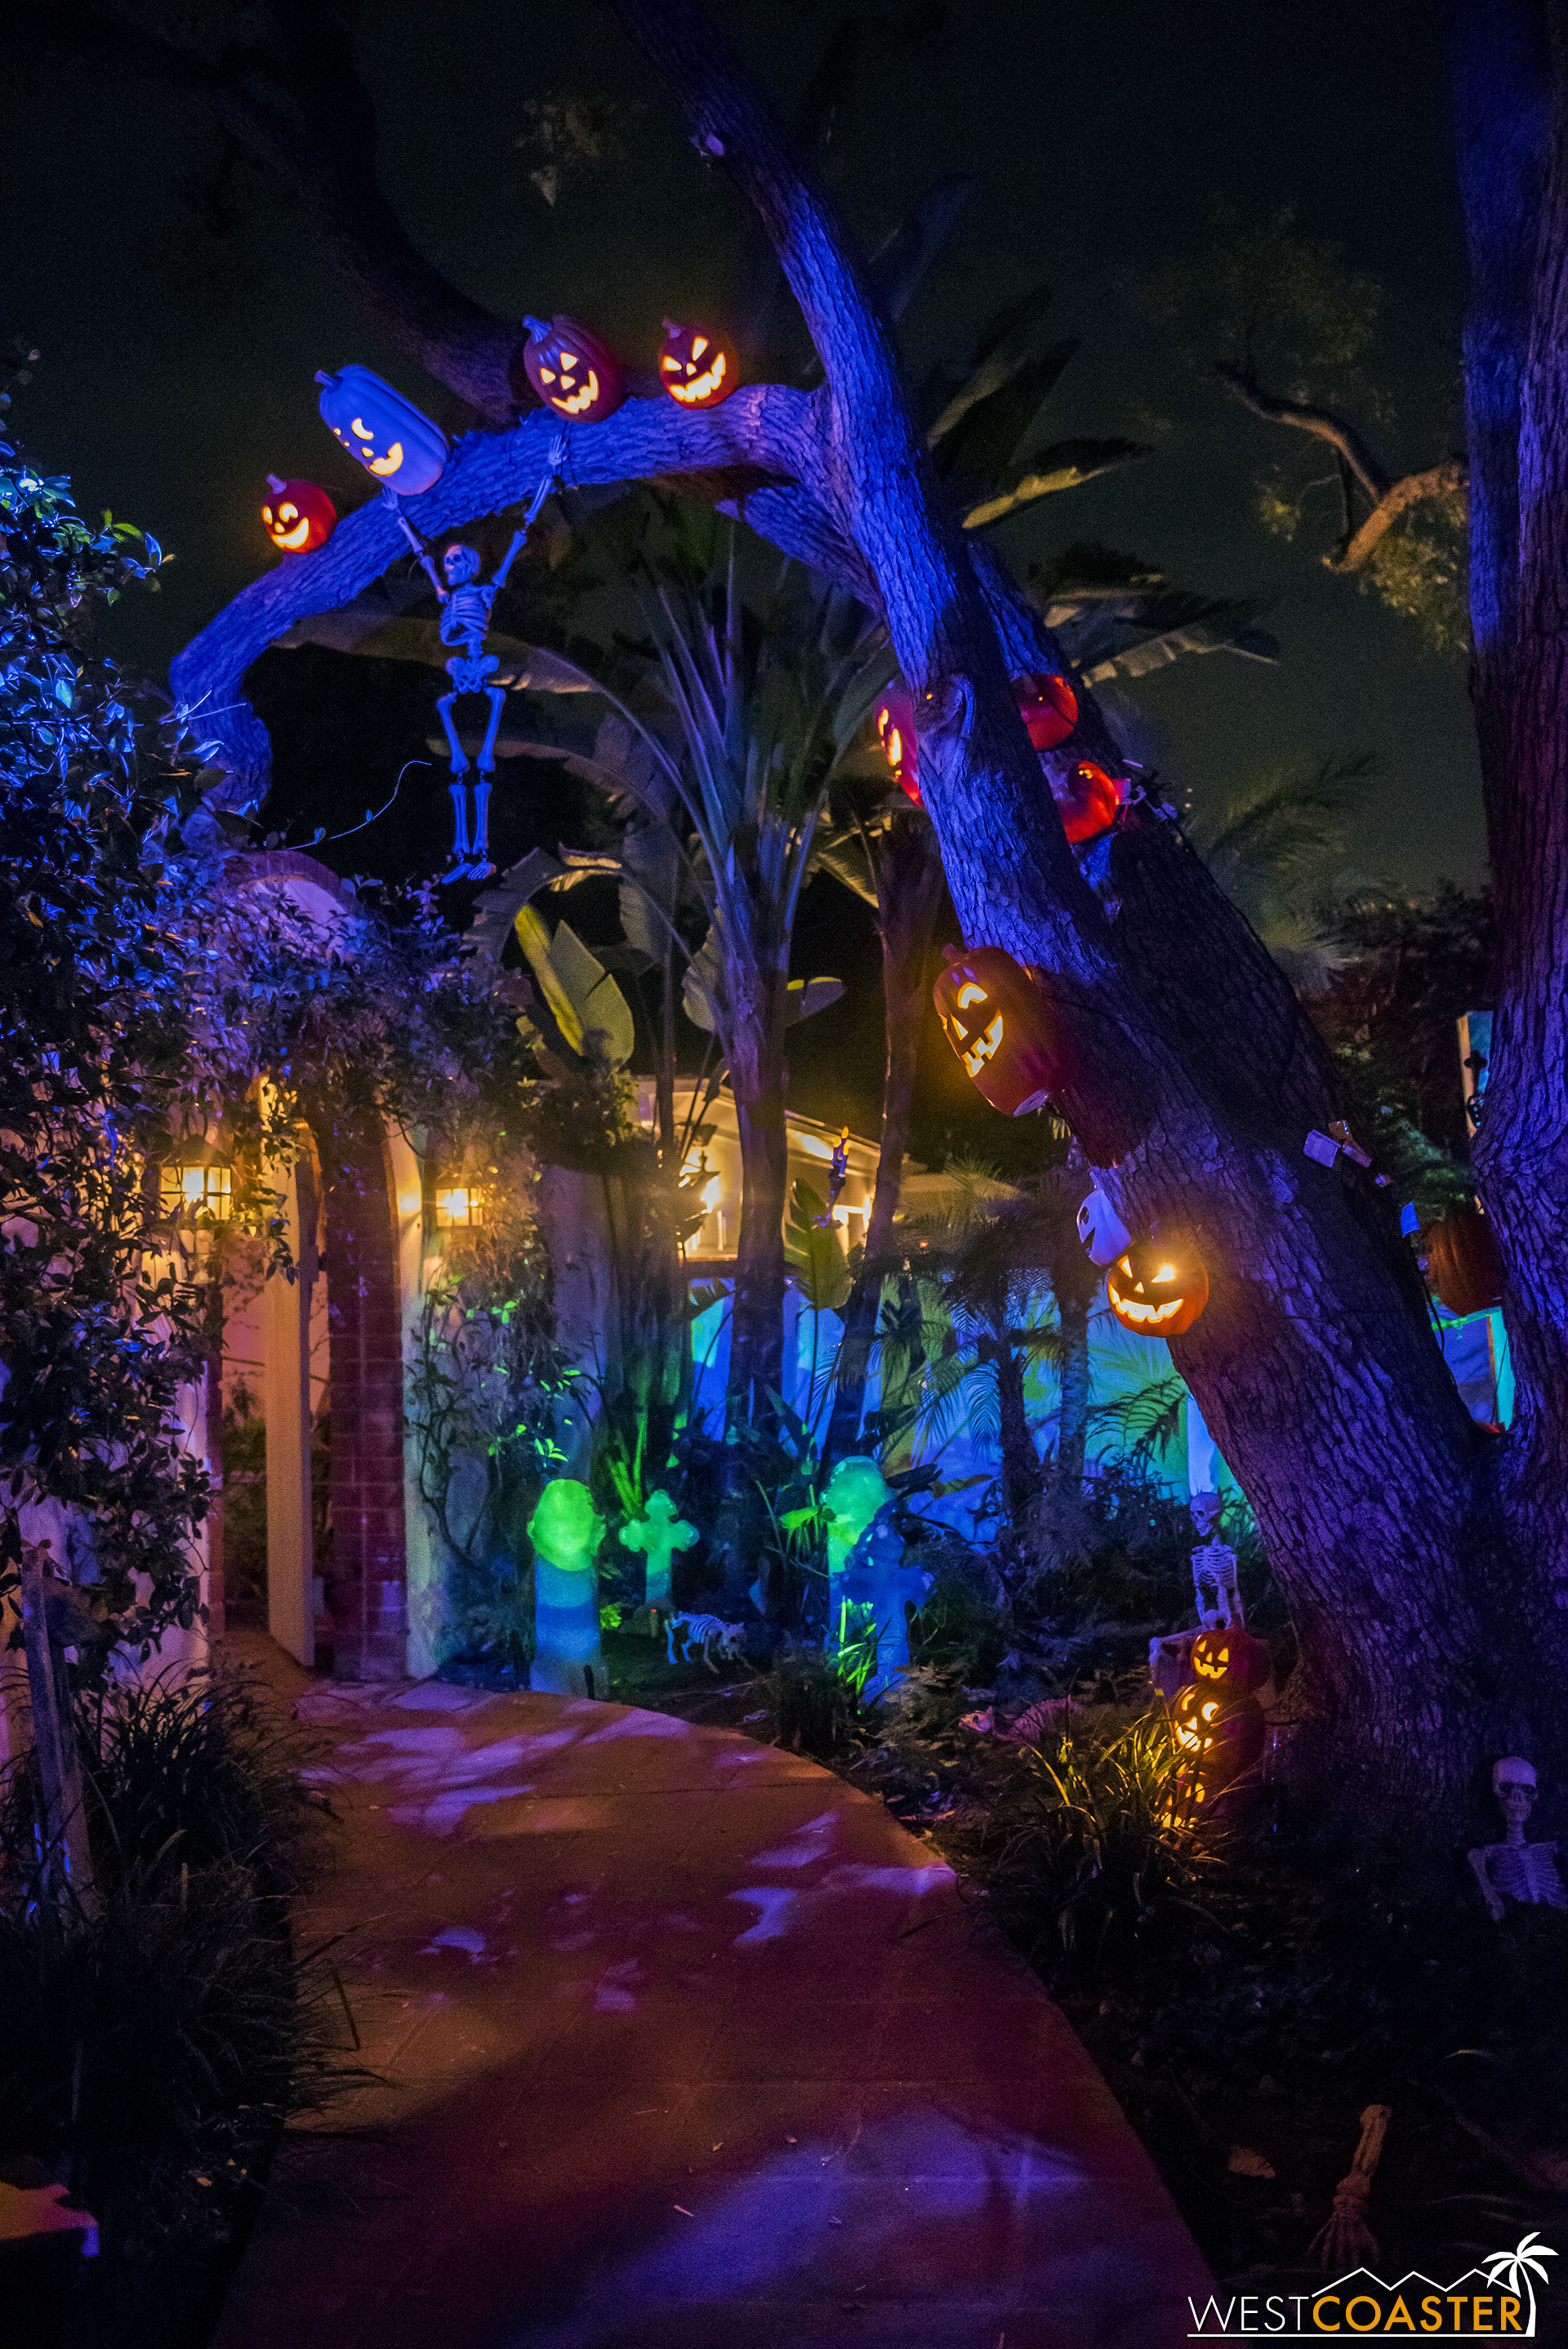 A lovely walkway leads to Pumpkin Hollow and the home's entry courtyard.